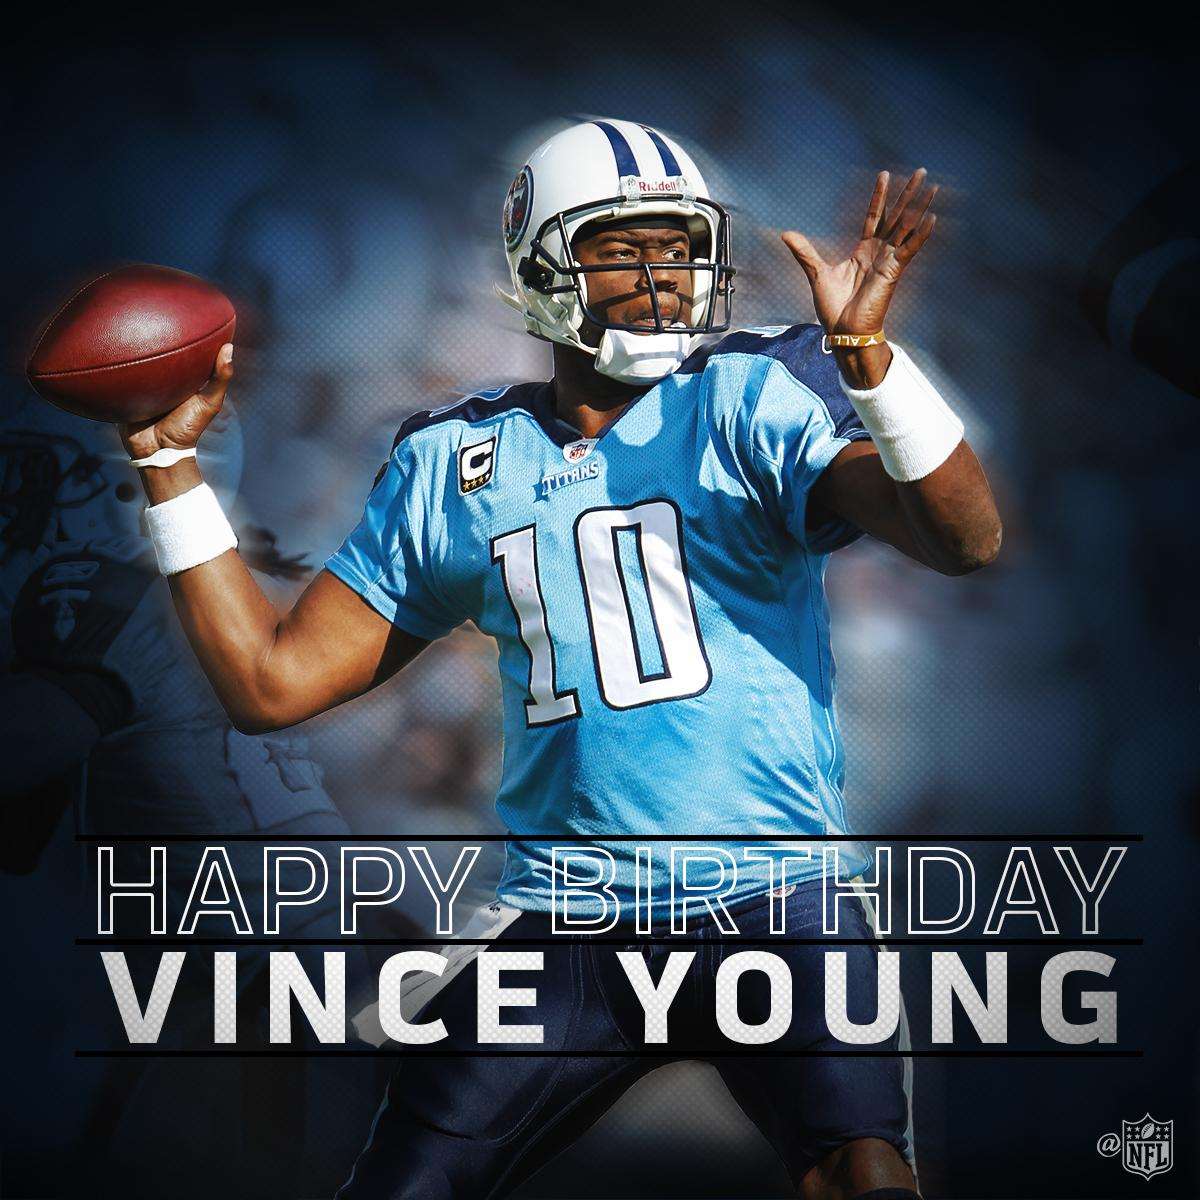 Join us in wishing Vince Young a Happy 34th Birthday! �� https://t.co/sjv0H4hi3V